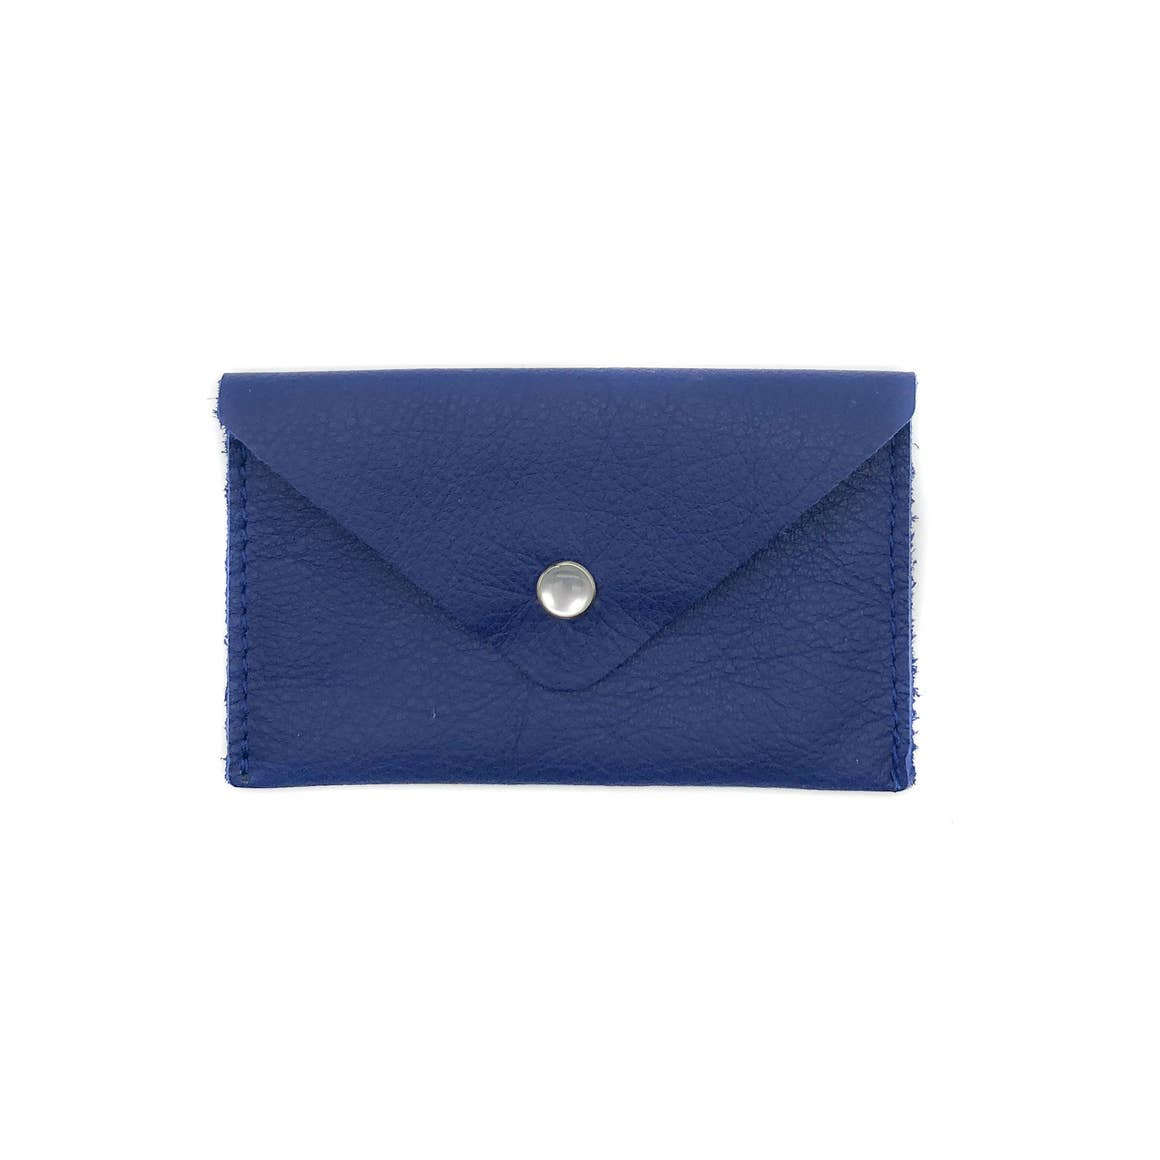 Crystalyn Kae Accessories Card Case Wallet in Cobalt Blue Upcycled Leather